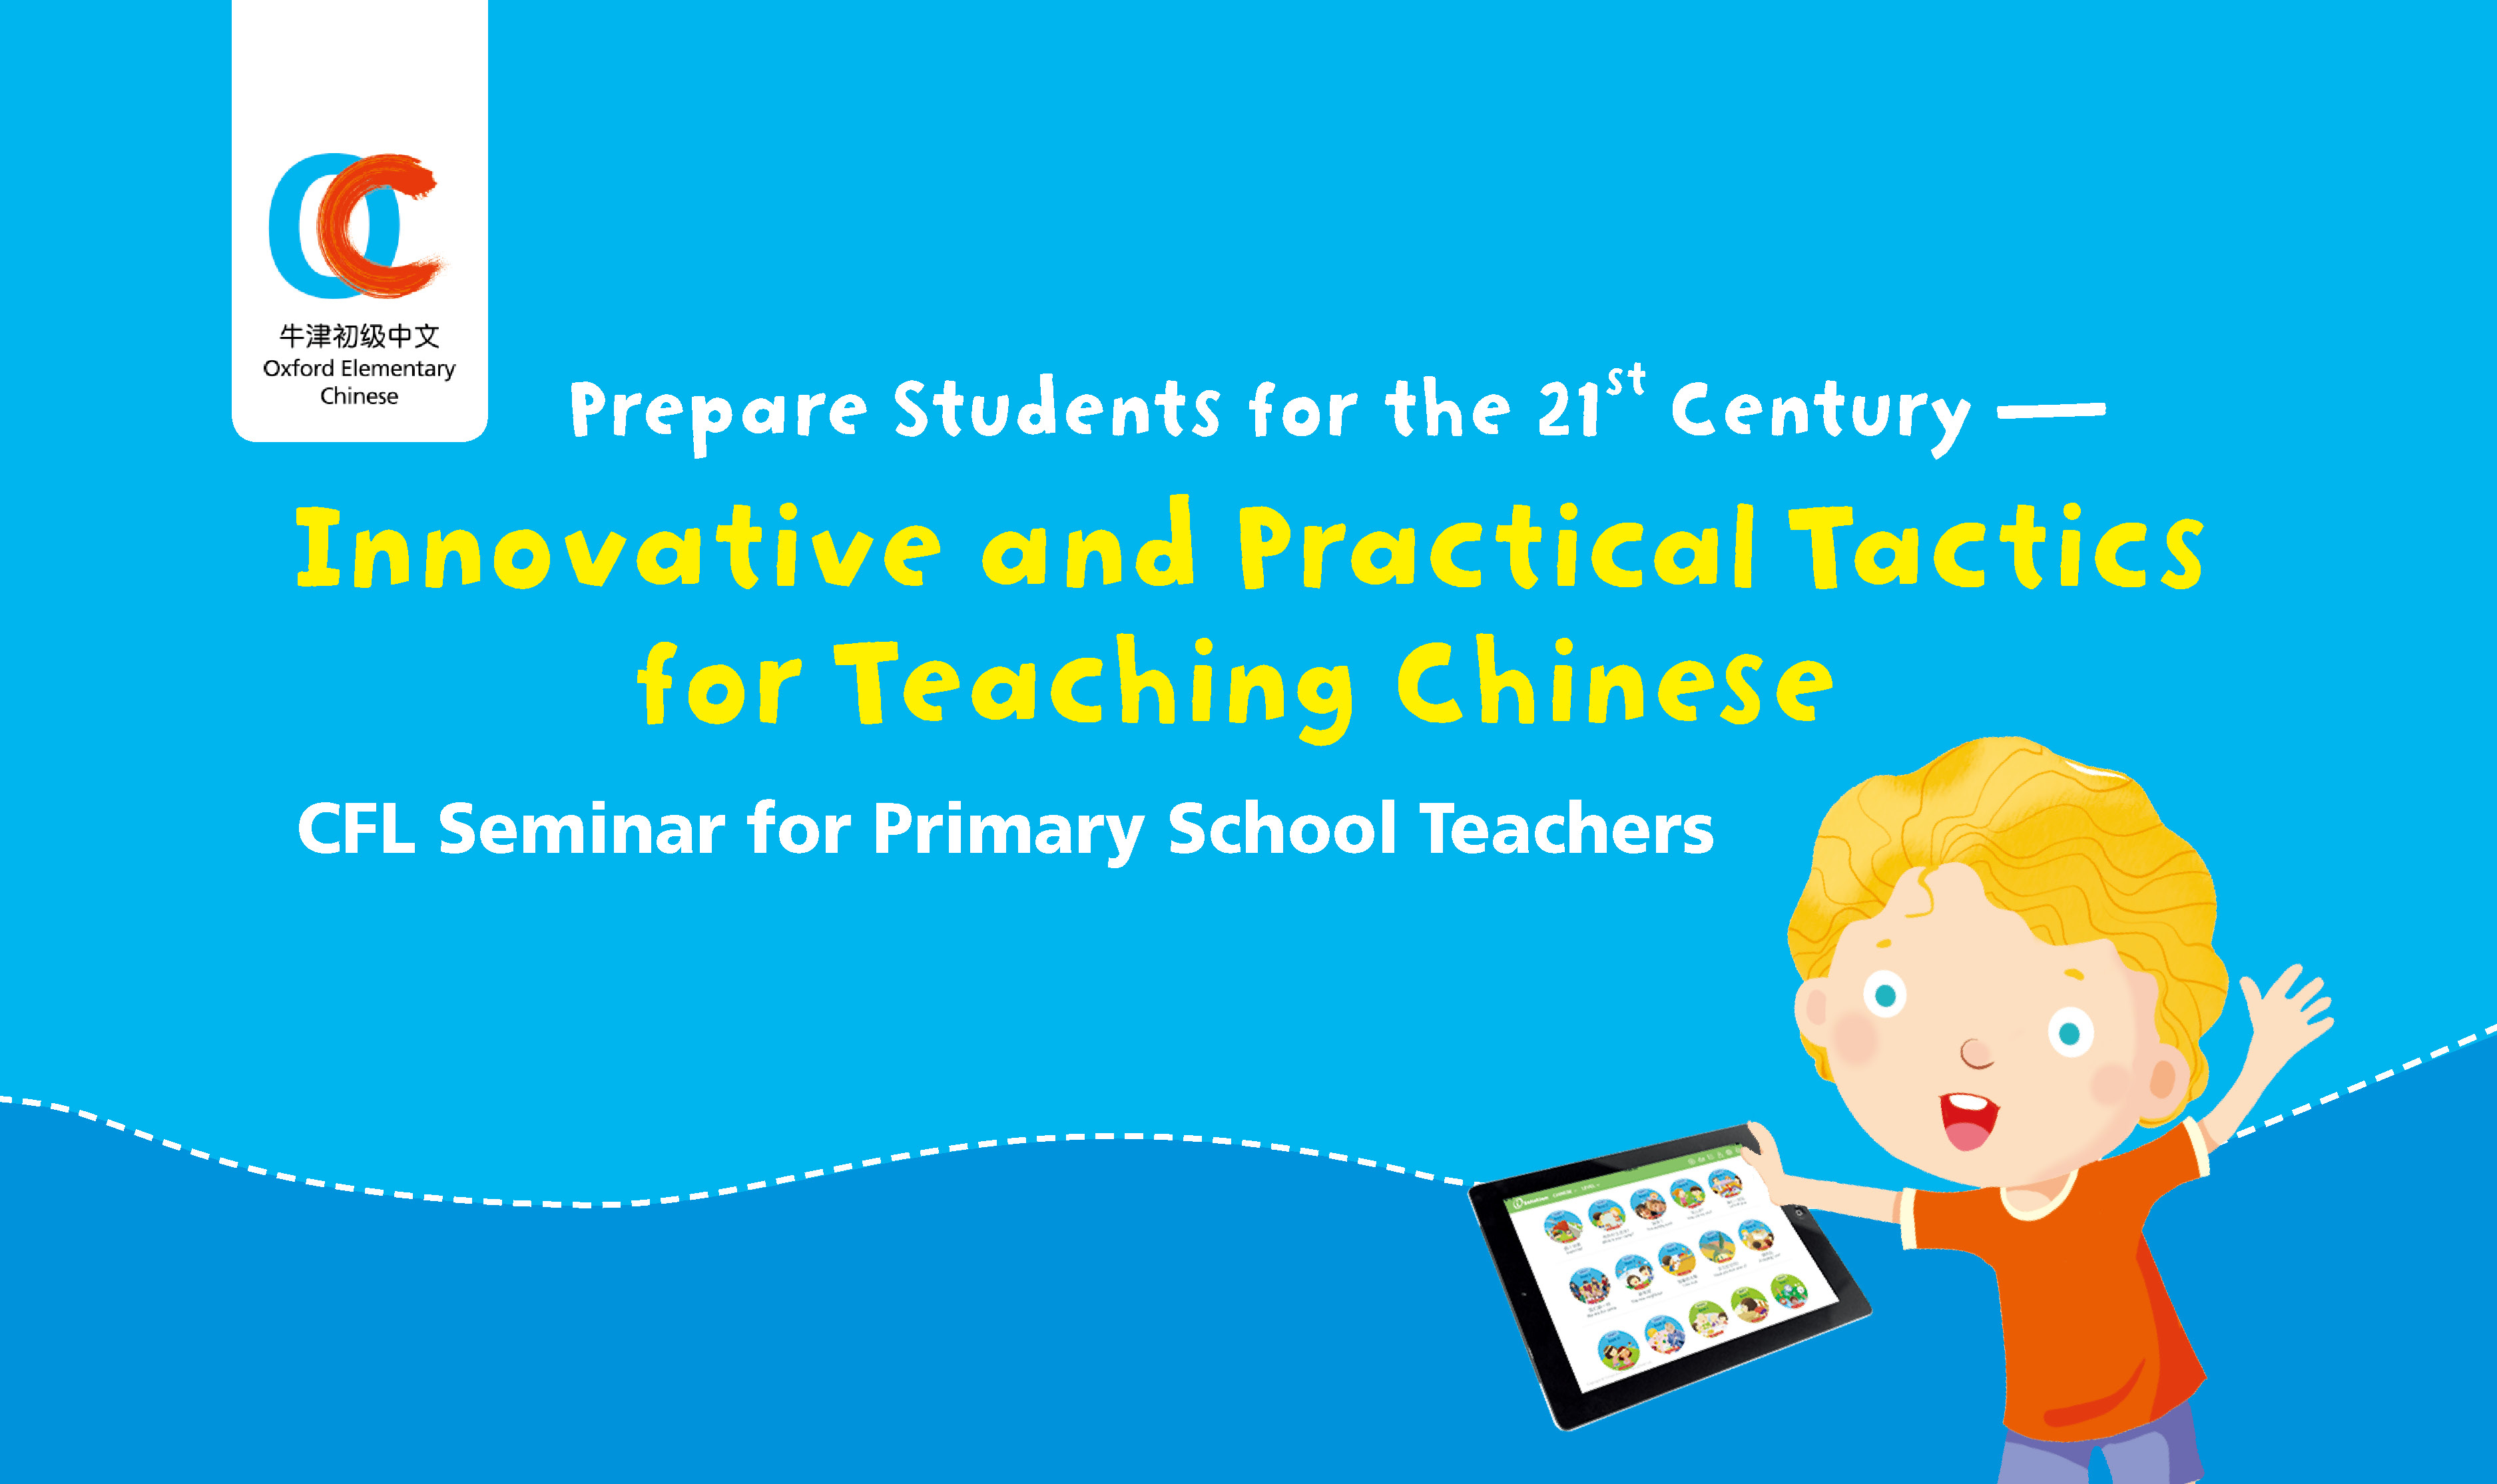 CFL Seminar for Primary School Teachers - Innovative and